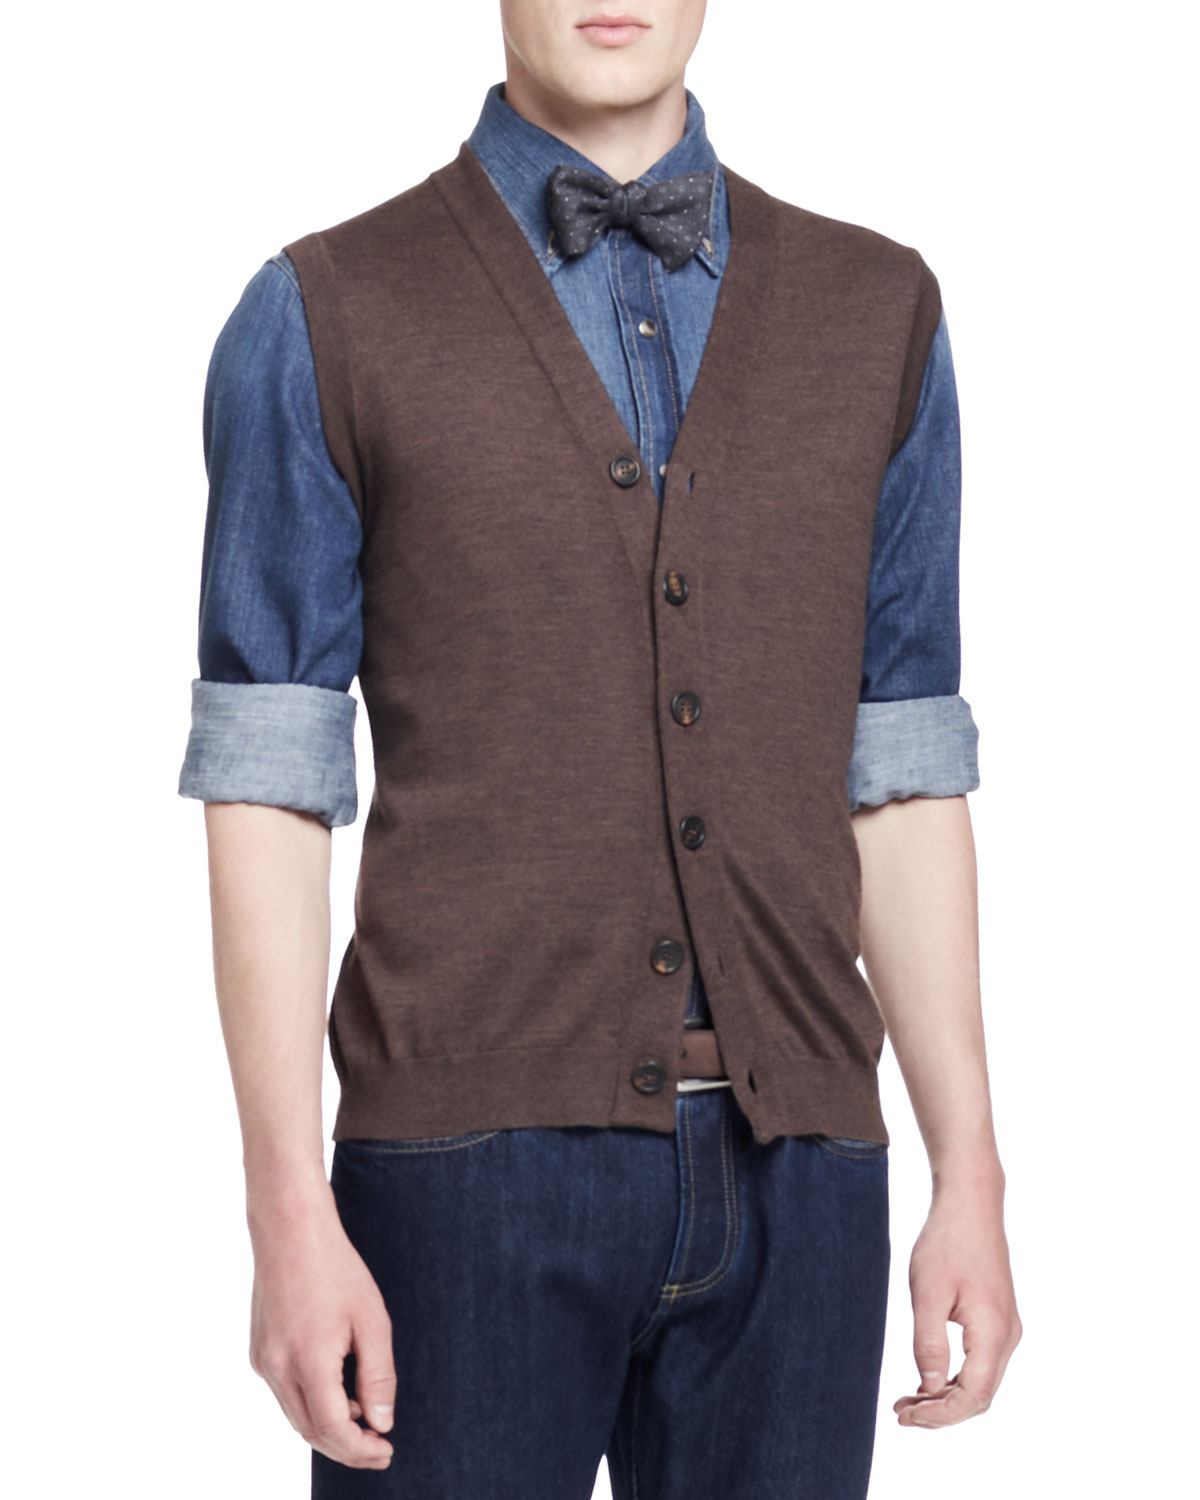 Mens Sleeveless Wool/Cashmere Cardigan, Cigar   Brunello Cucinelli   Cigar